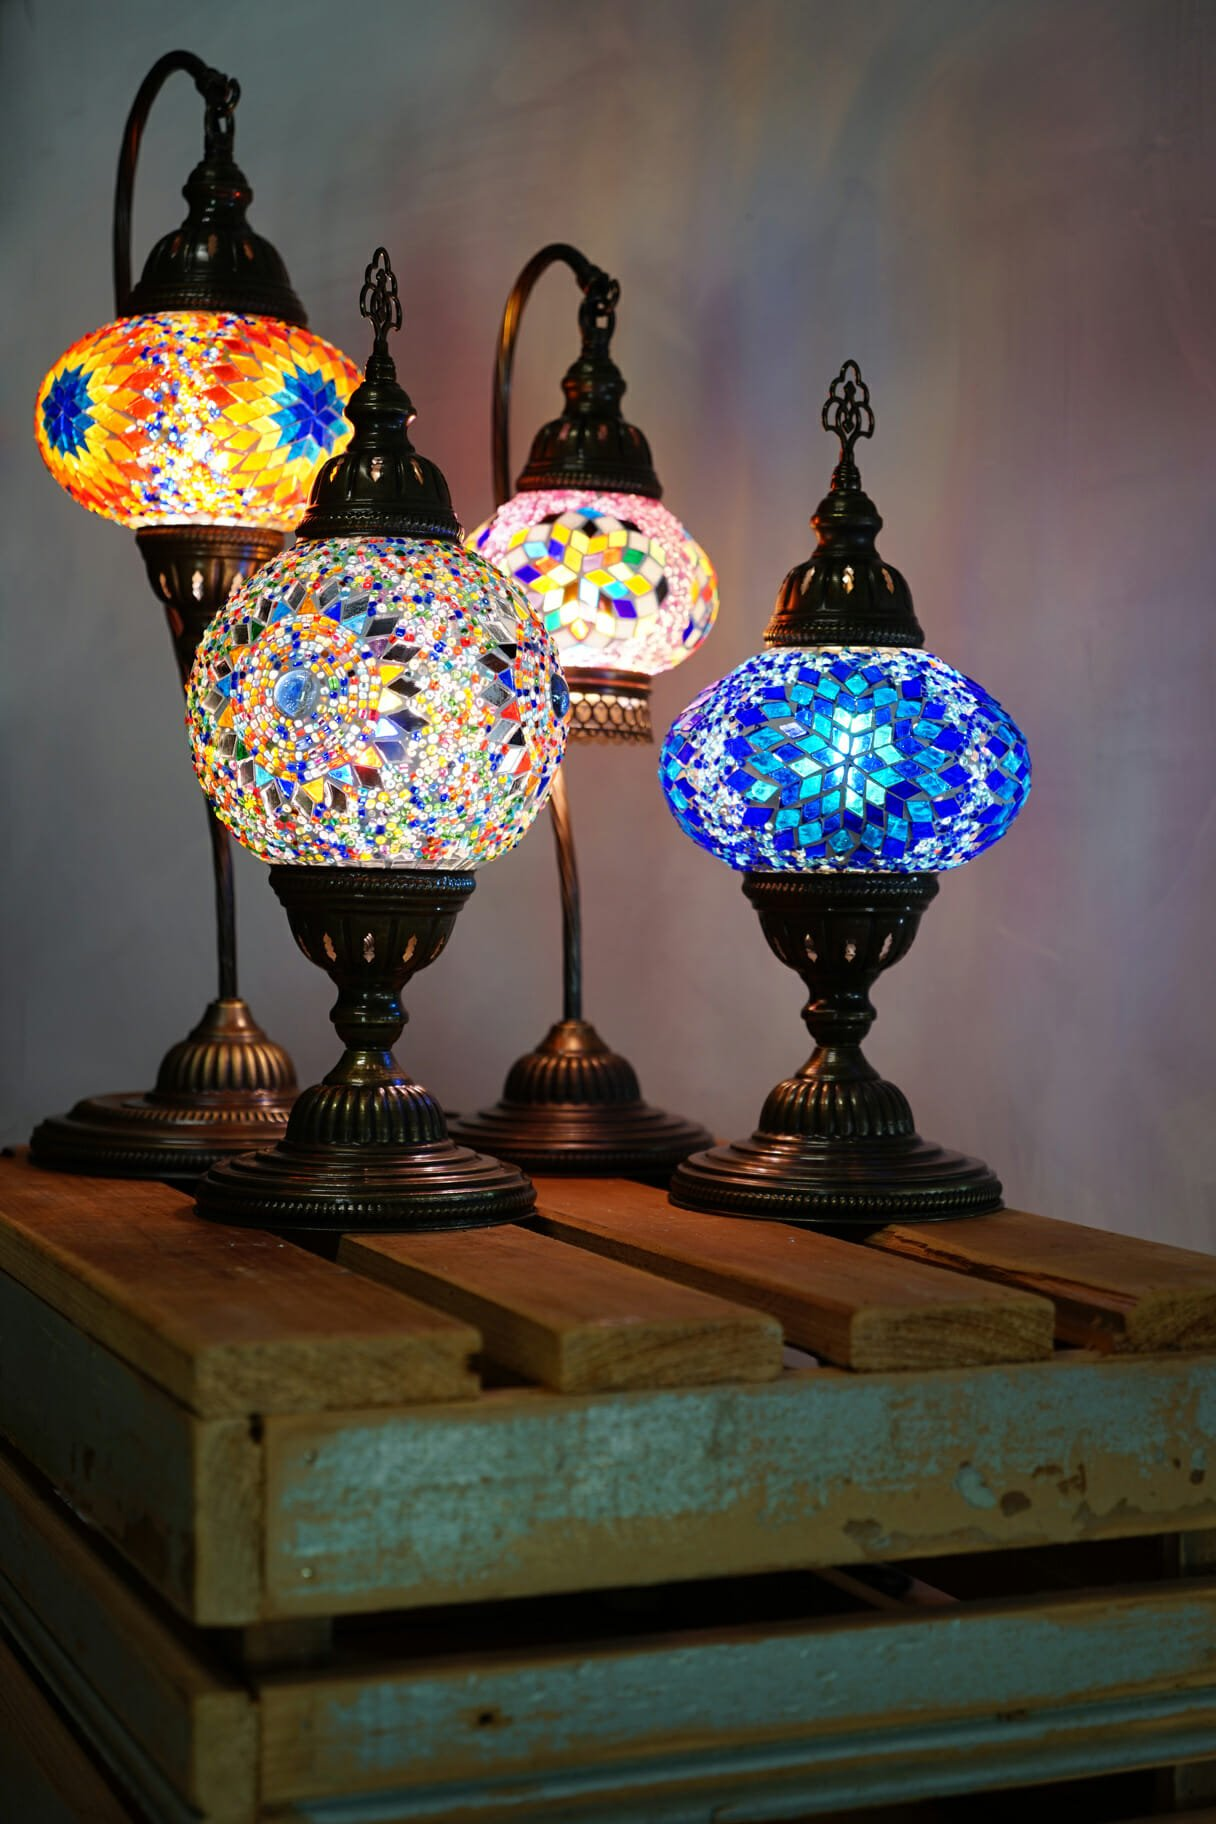 Star ufo mosaic table lamp the dancing pixie turkish mosaic table lamps 4 sizes 3 aloadofball Choice Image